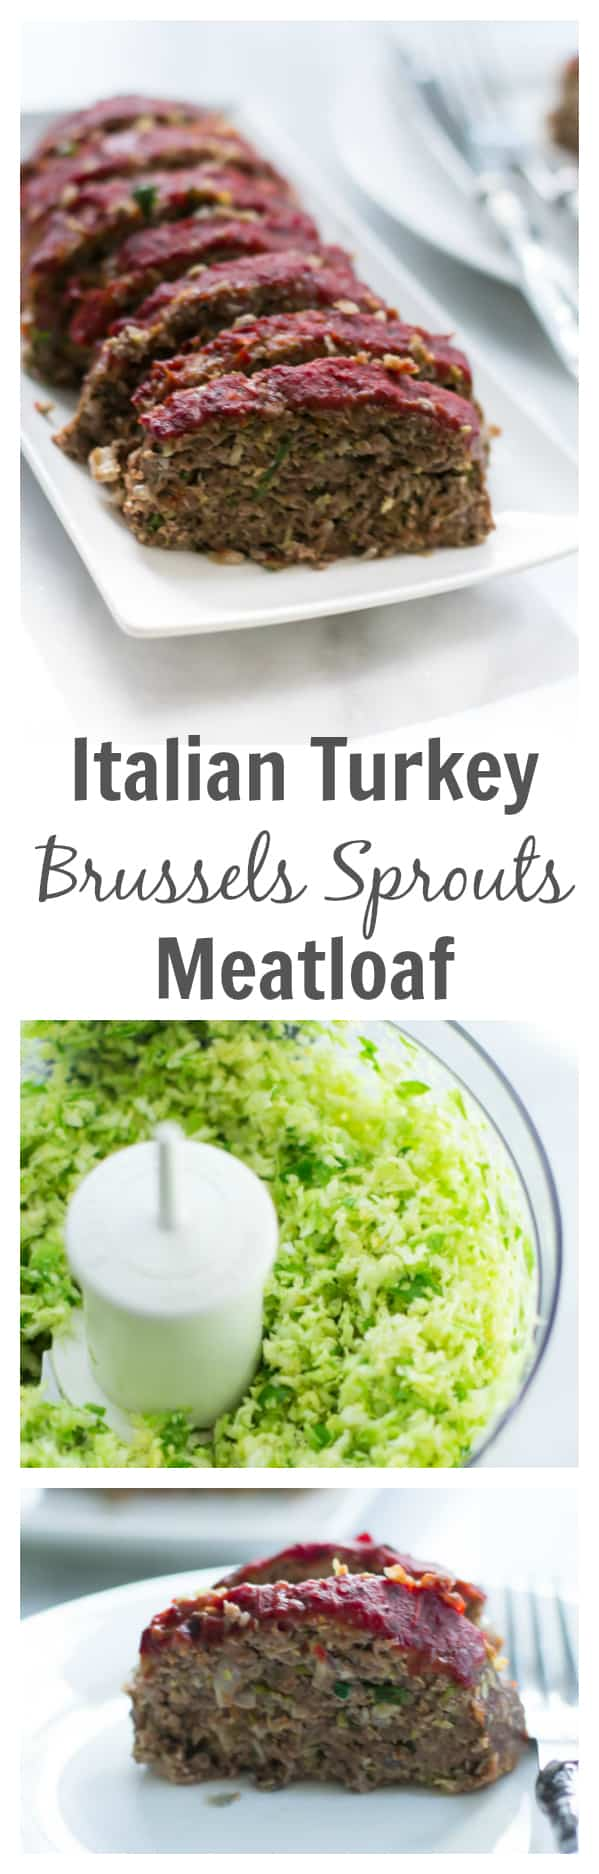 Turkey Brussels Sprout Meatloaf - This Italian Turkey & Brussels Sprouts Meatloaf is made healthier by using extra-lean Italian Turkey and shredded brussels sprouts. It is also very moist and flavourful.